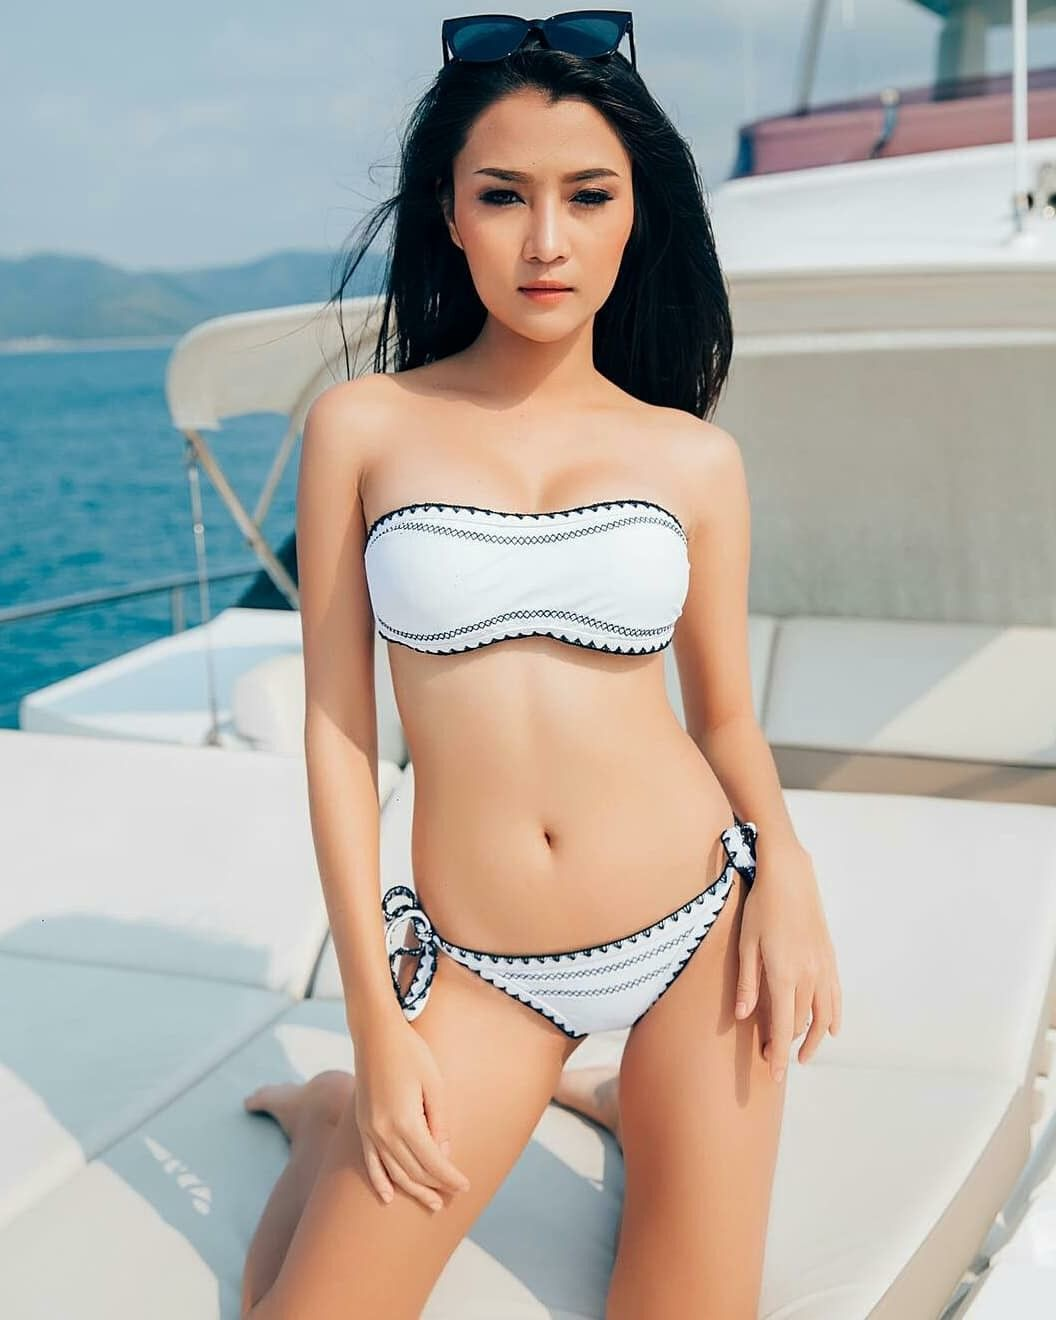 Youtube Jestina Lam nudes (81 photo), Topless, Fappening, Boobs, legs 2019